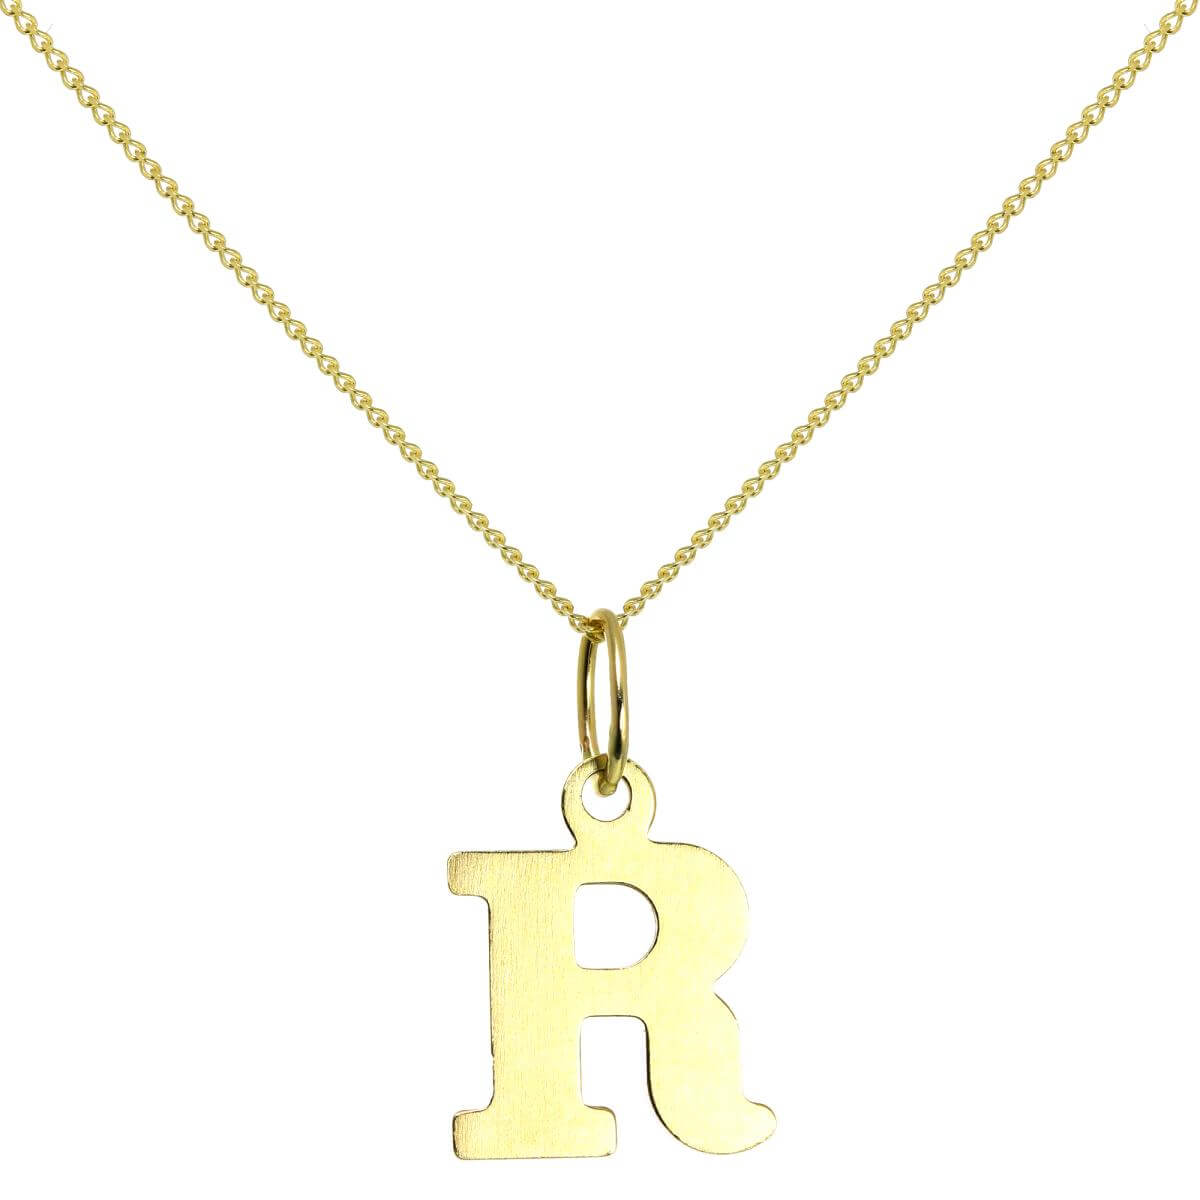 Lightweight 9ct Gold Initial Letter R Charm - 20 Inches